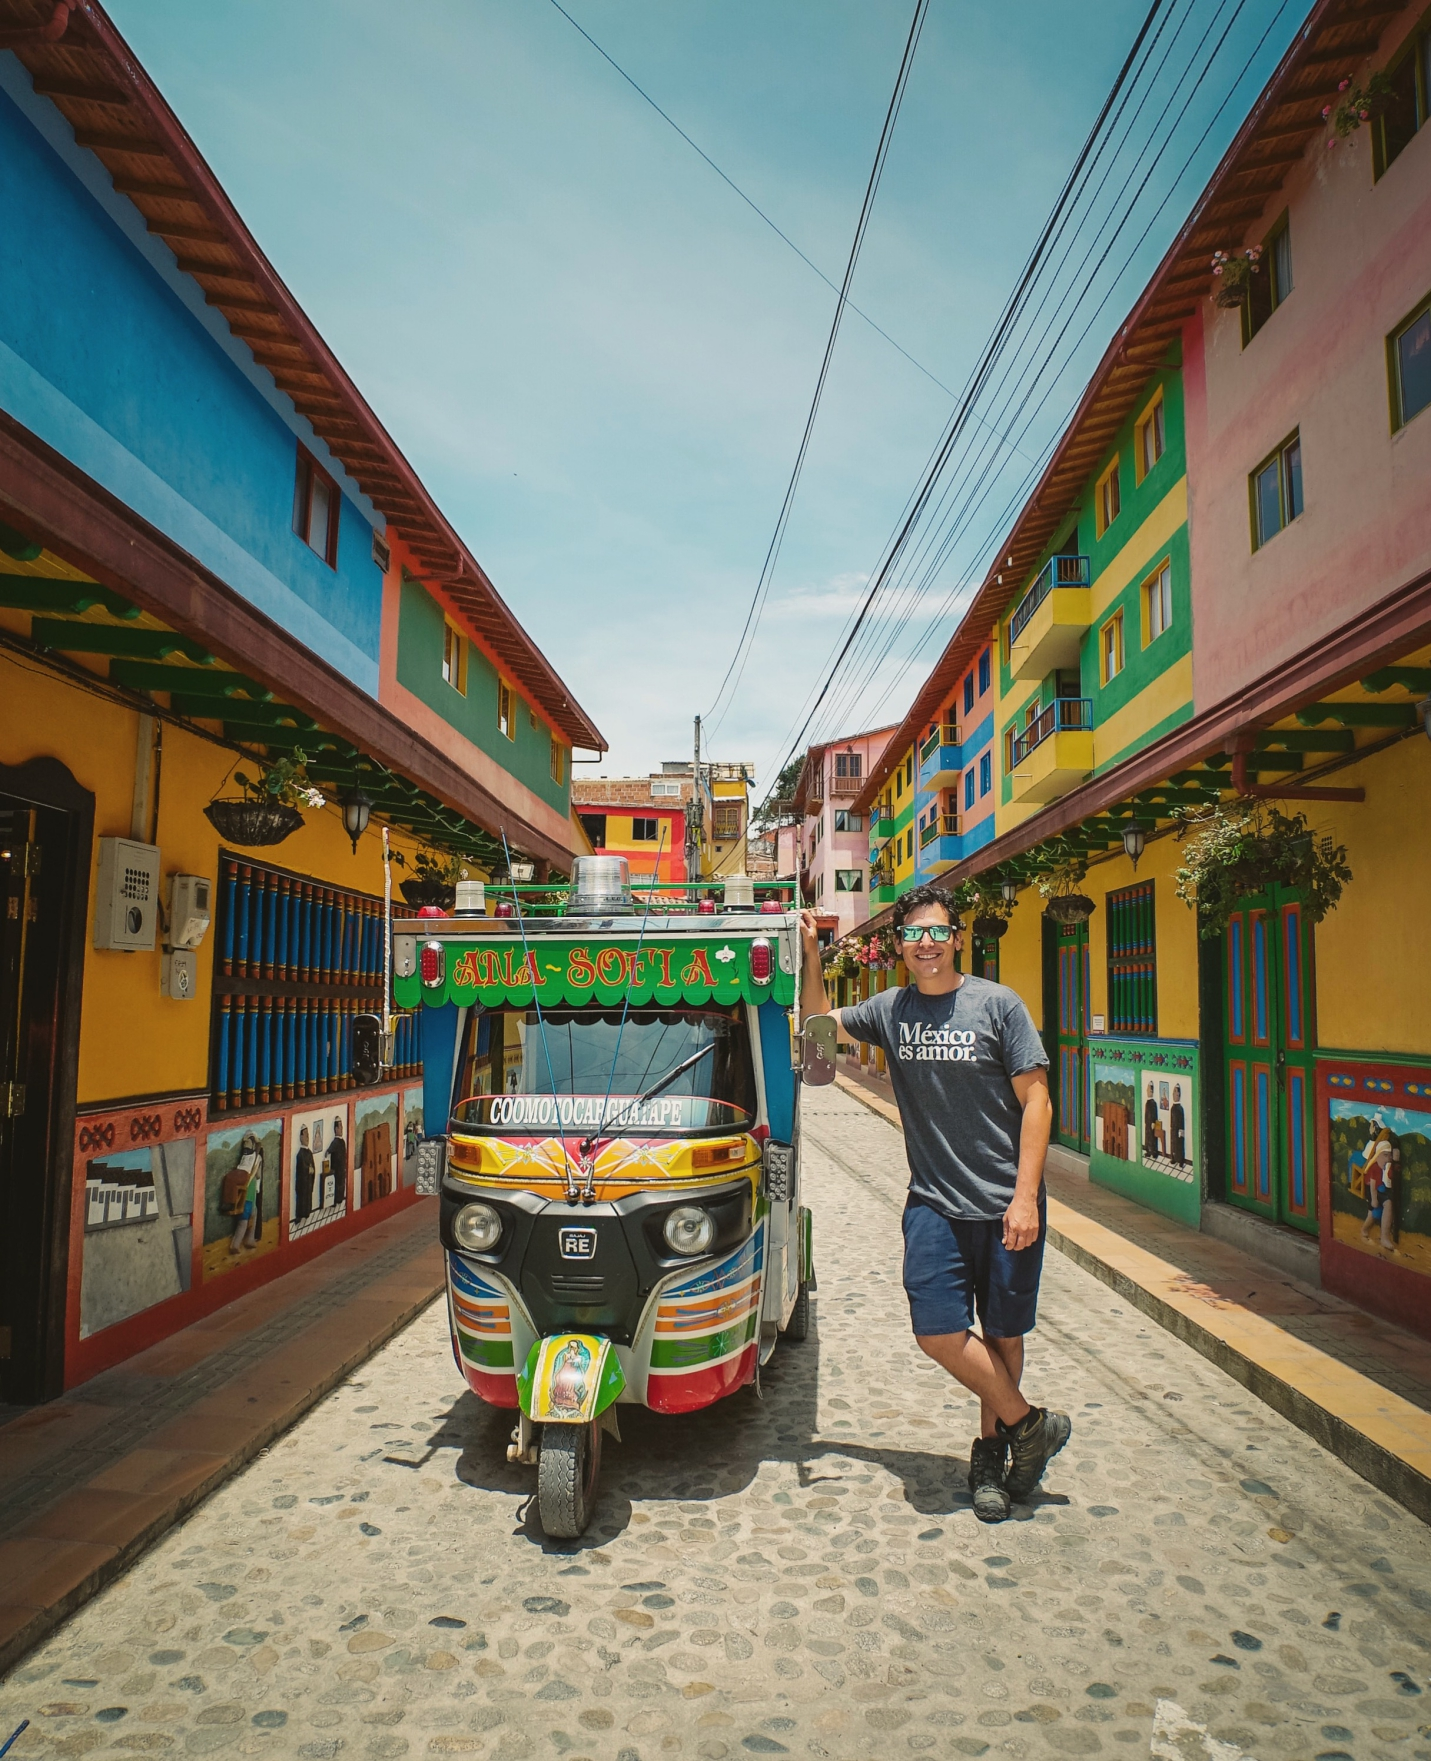 My impressions of Colombia